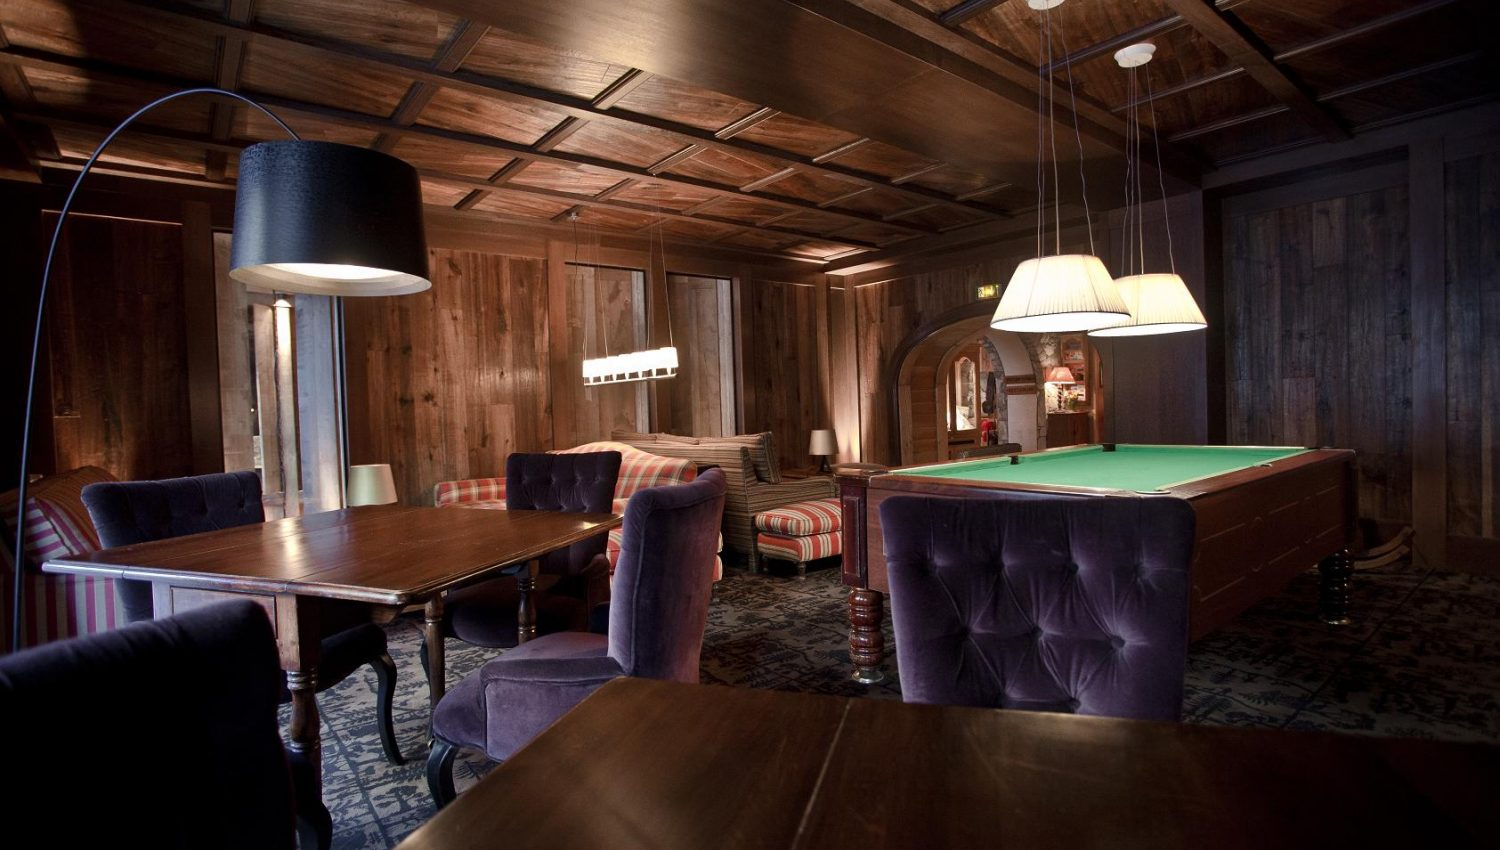 val-d-isere-hotel-le-blizzard-6